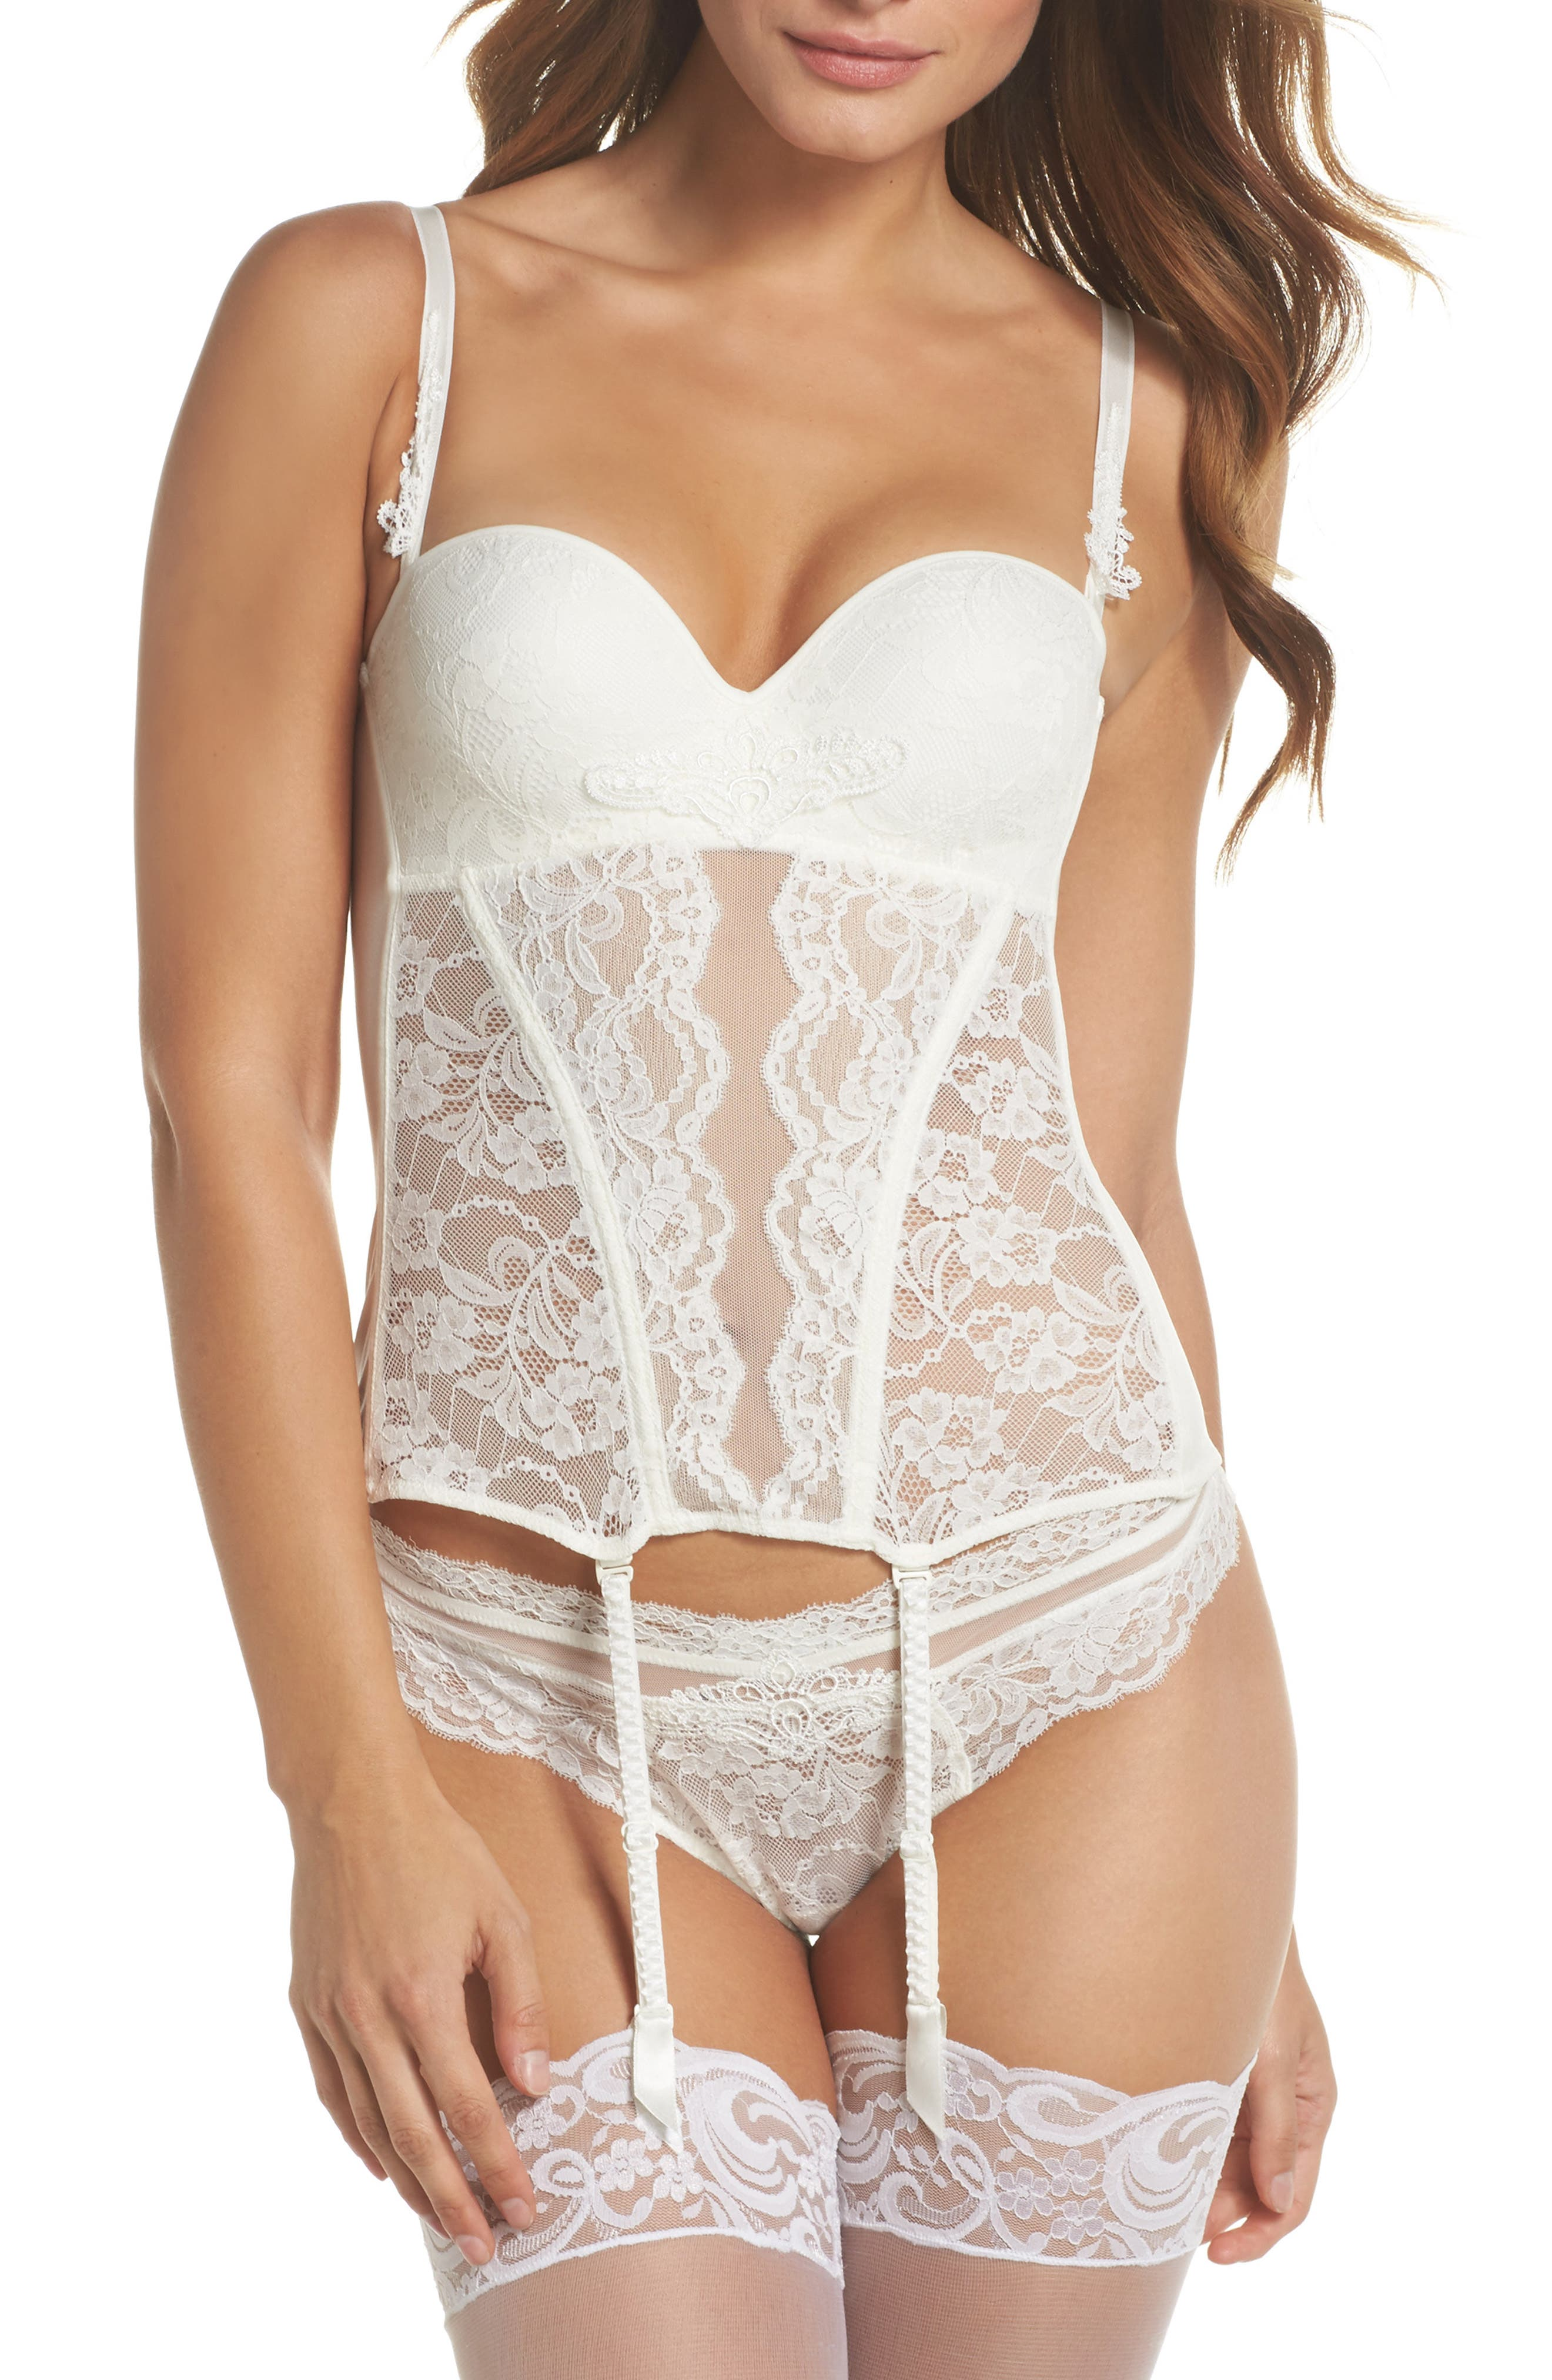 Exception Charme Thong,                             Alternate thumbnail 6, color,                             NACRE